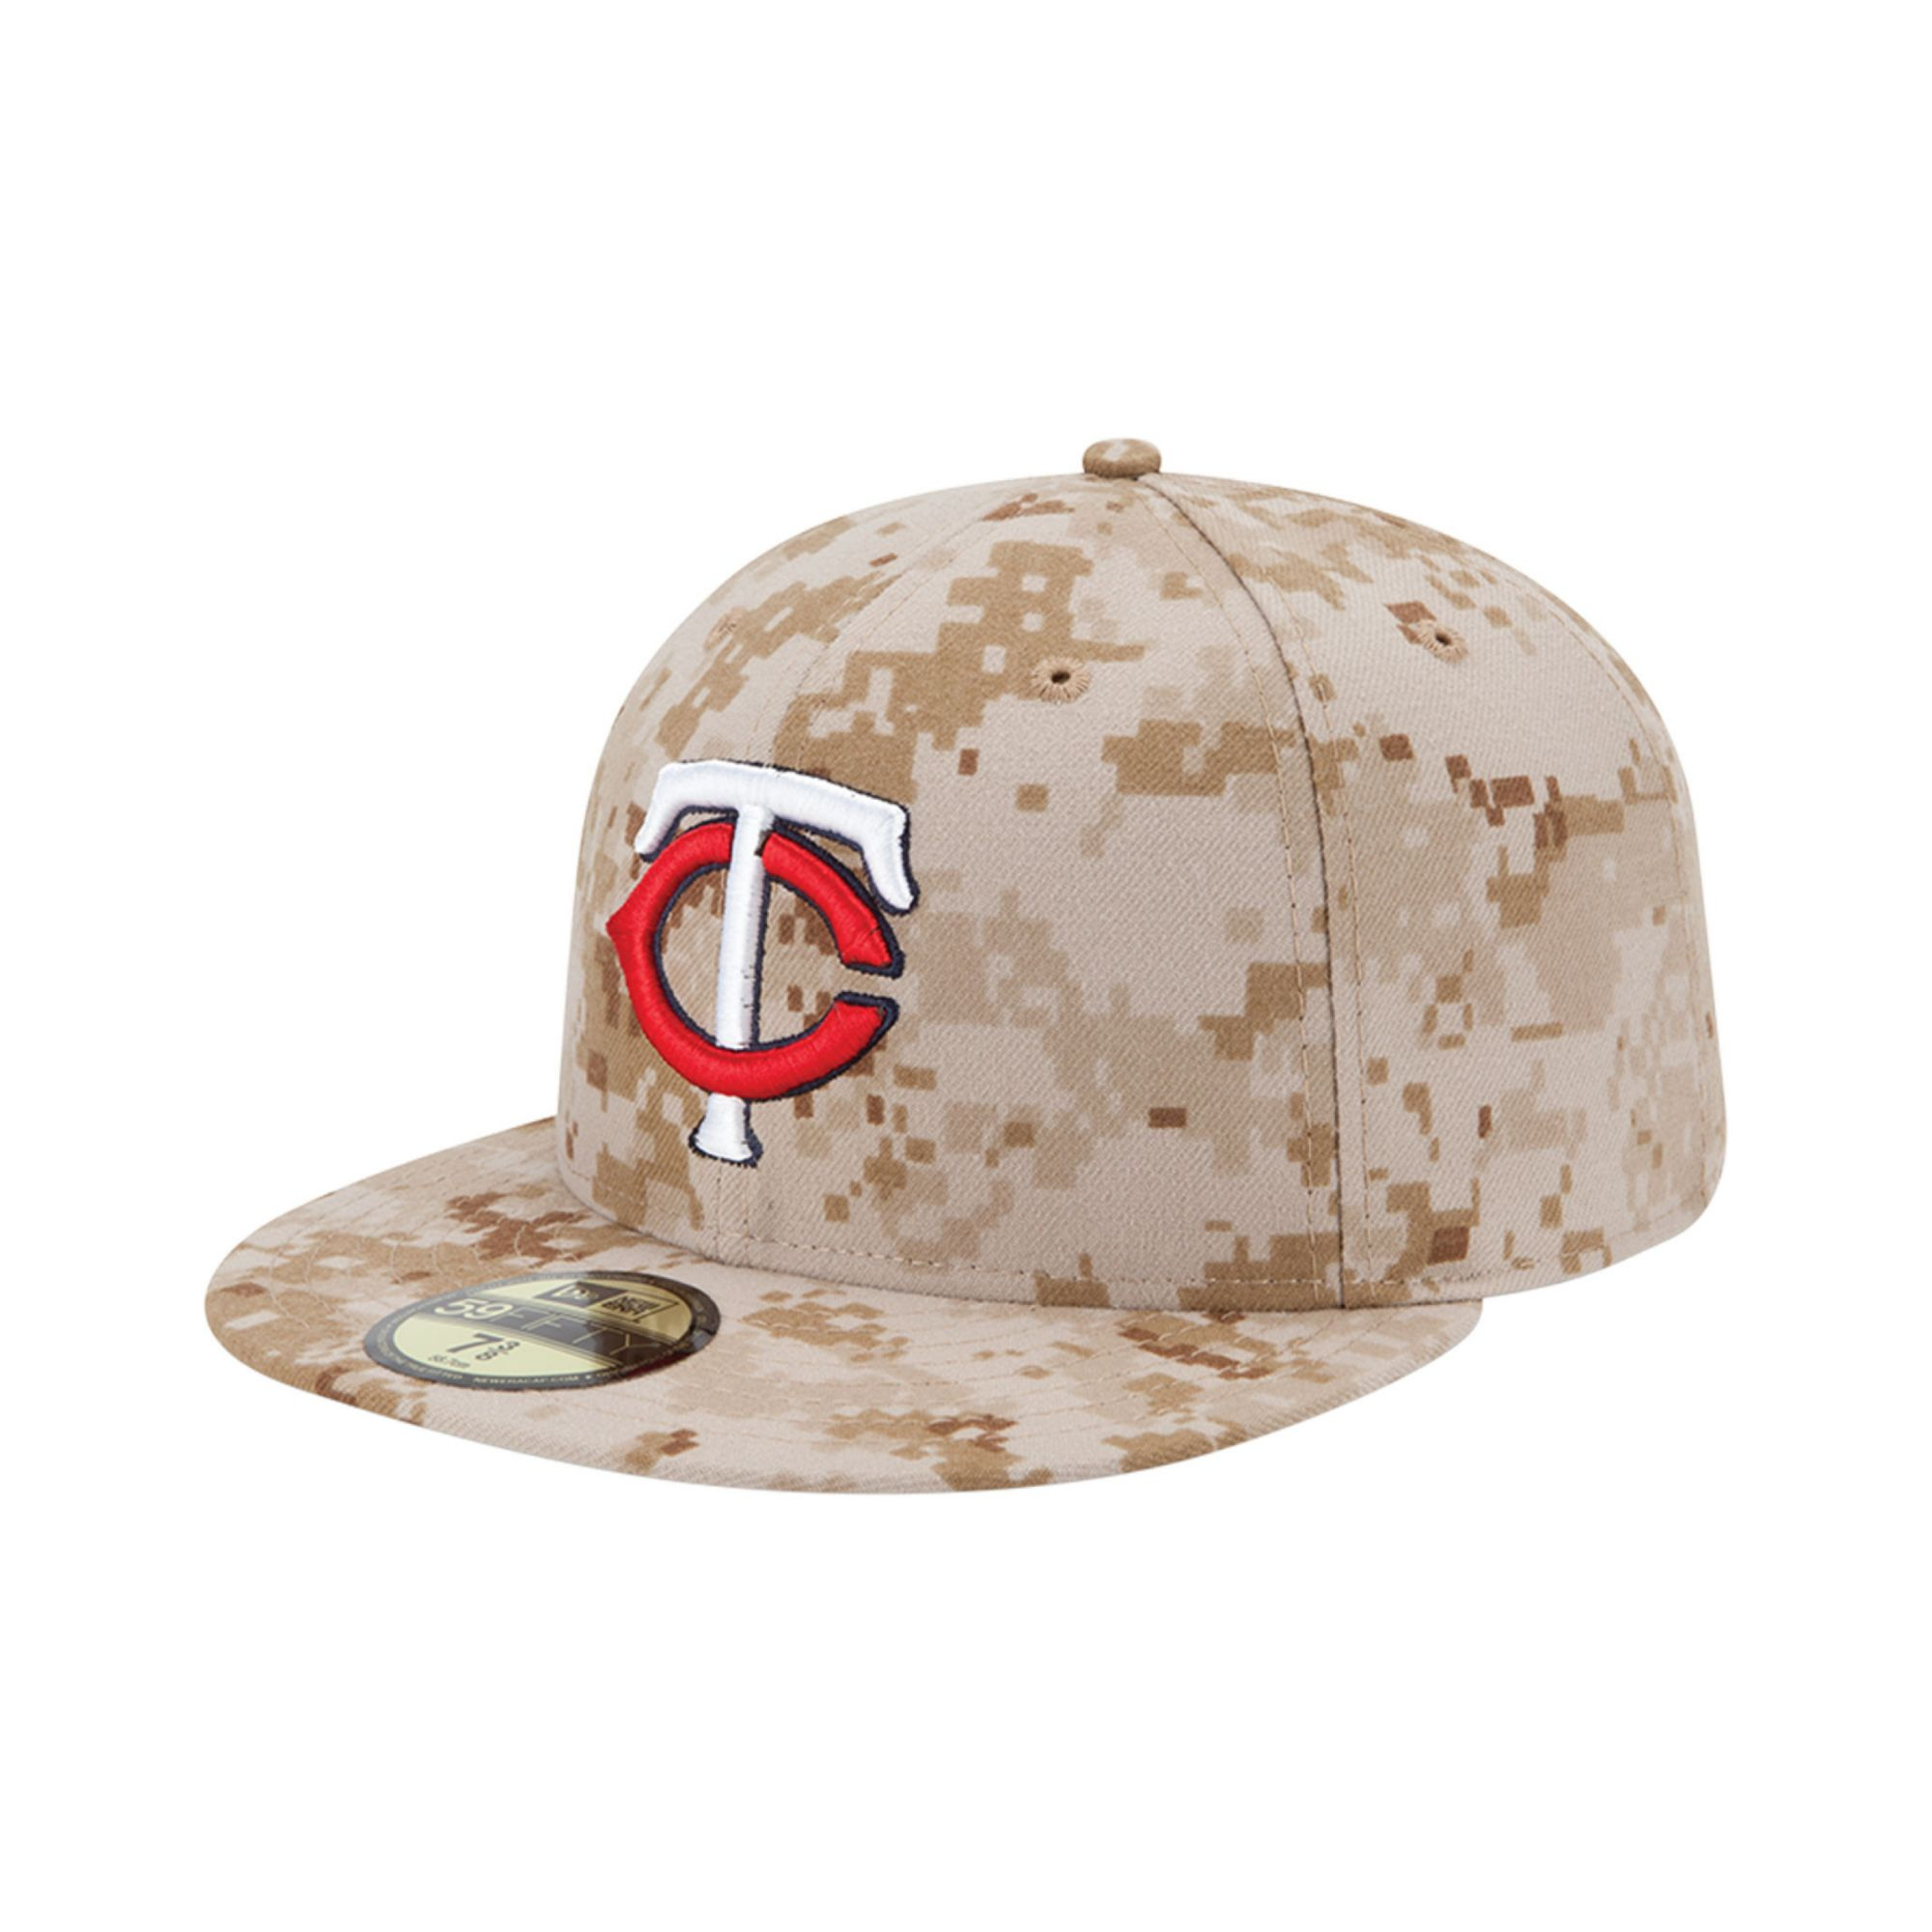 28c7ac1acc8 Lyst - KTZ Minnesota Twins Mlb Memorial Day Stars Stripes 59fifty ...